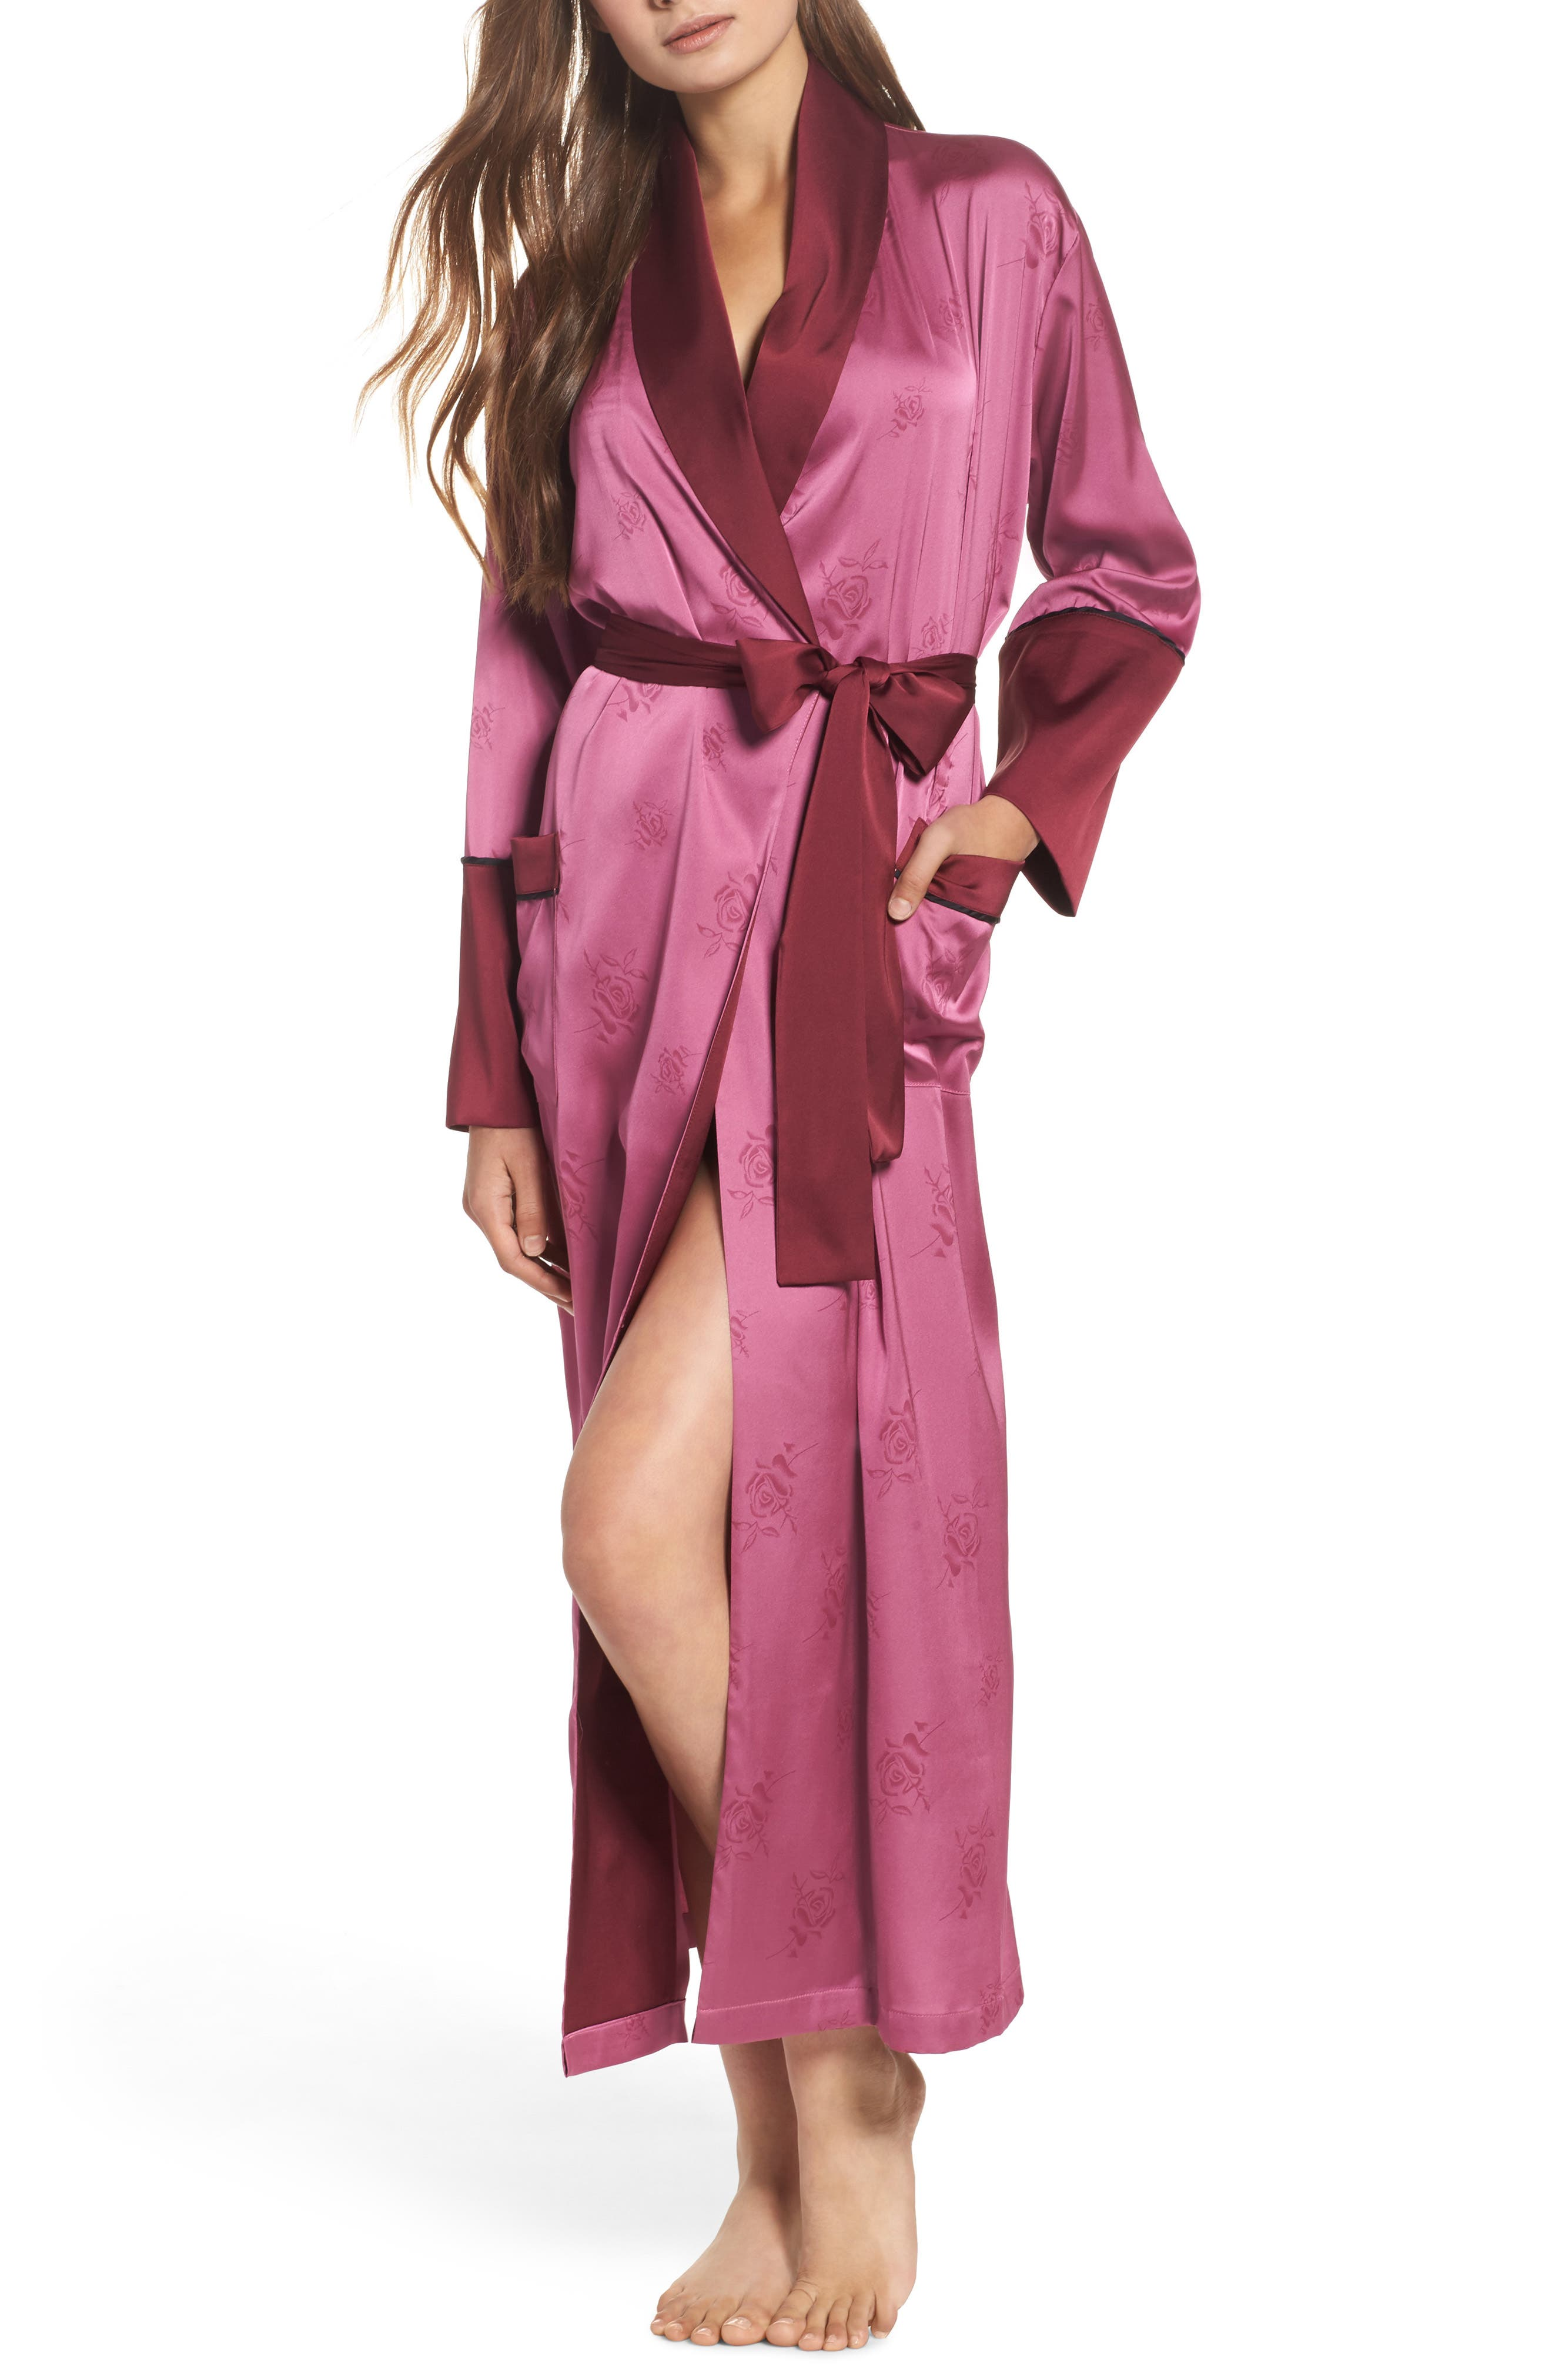 Bed to Brunch Robe